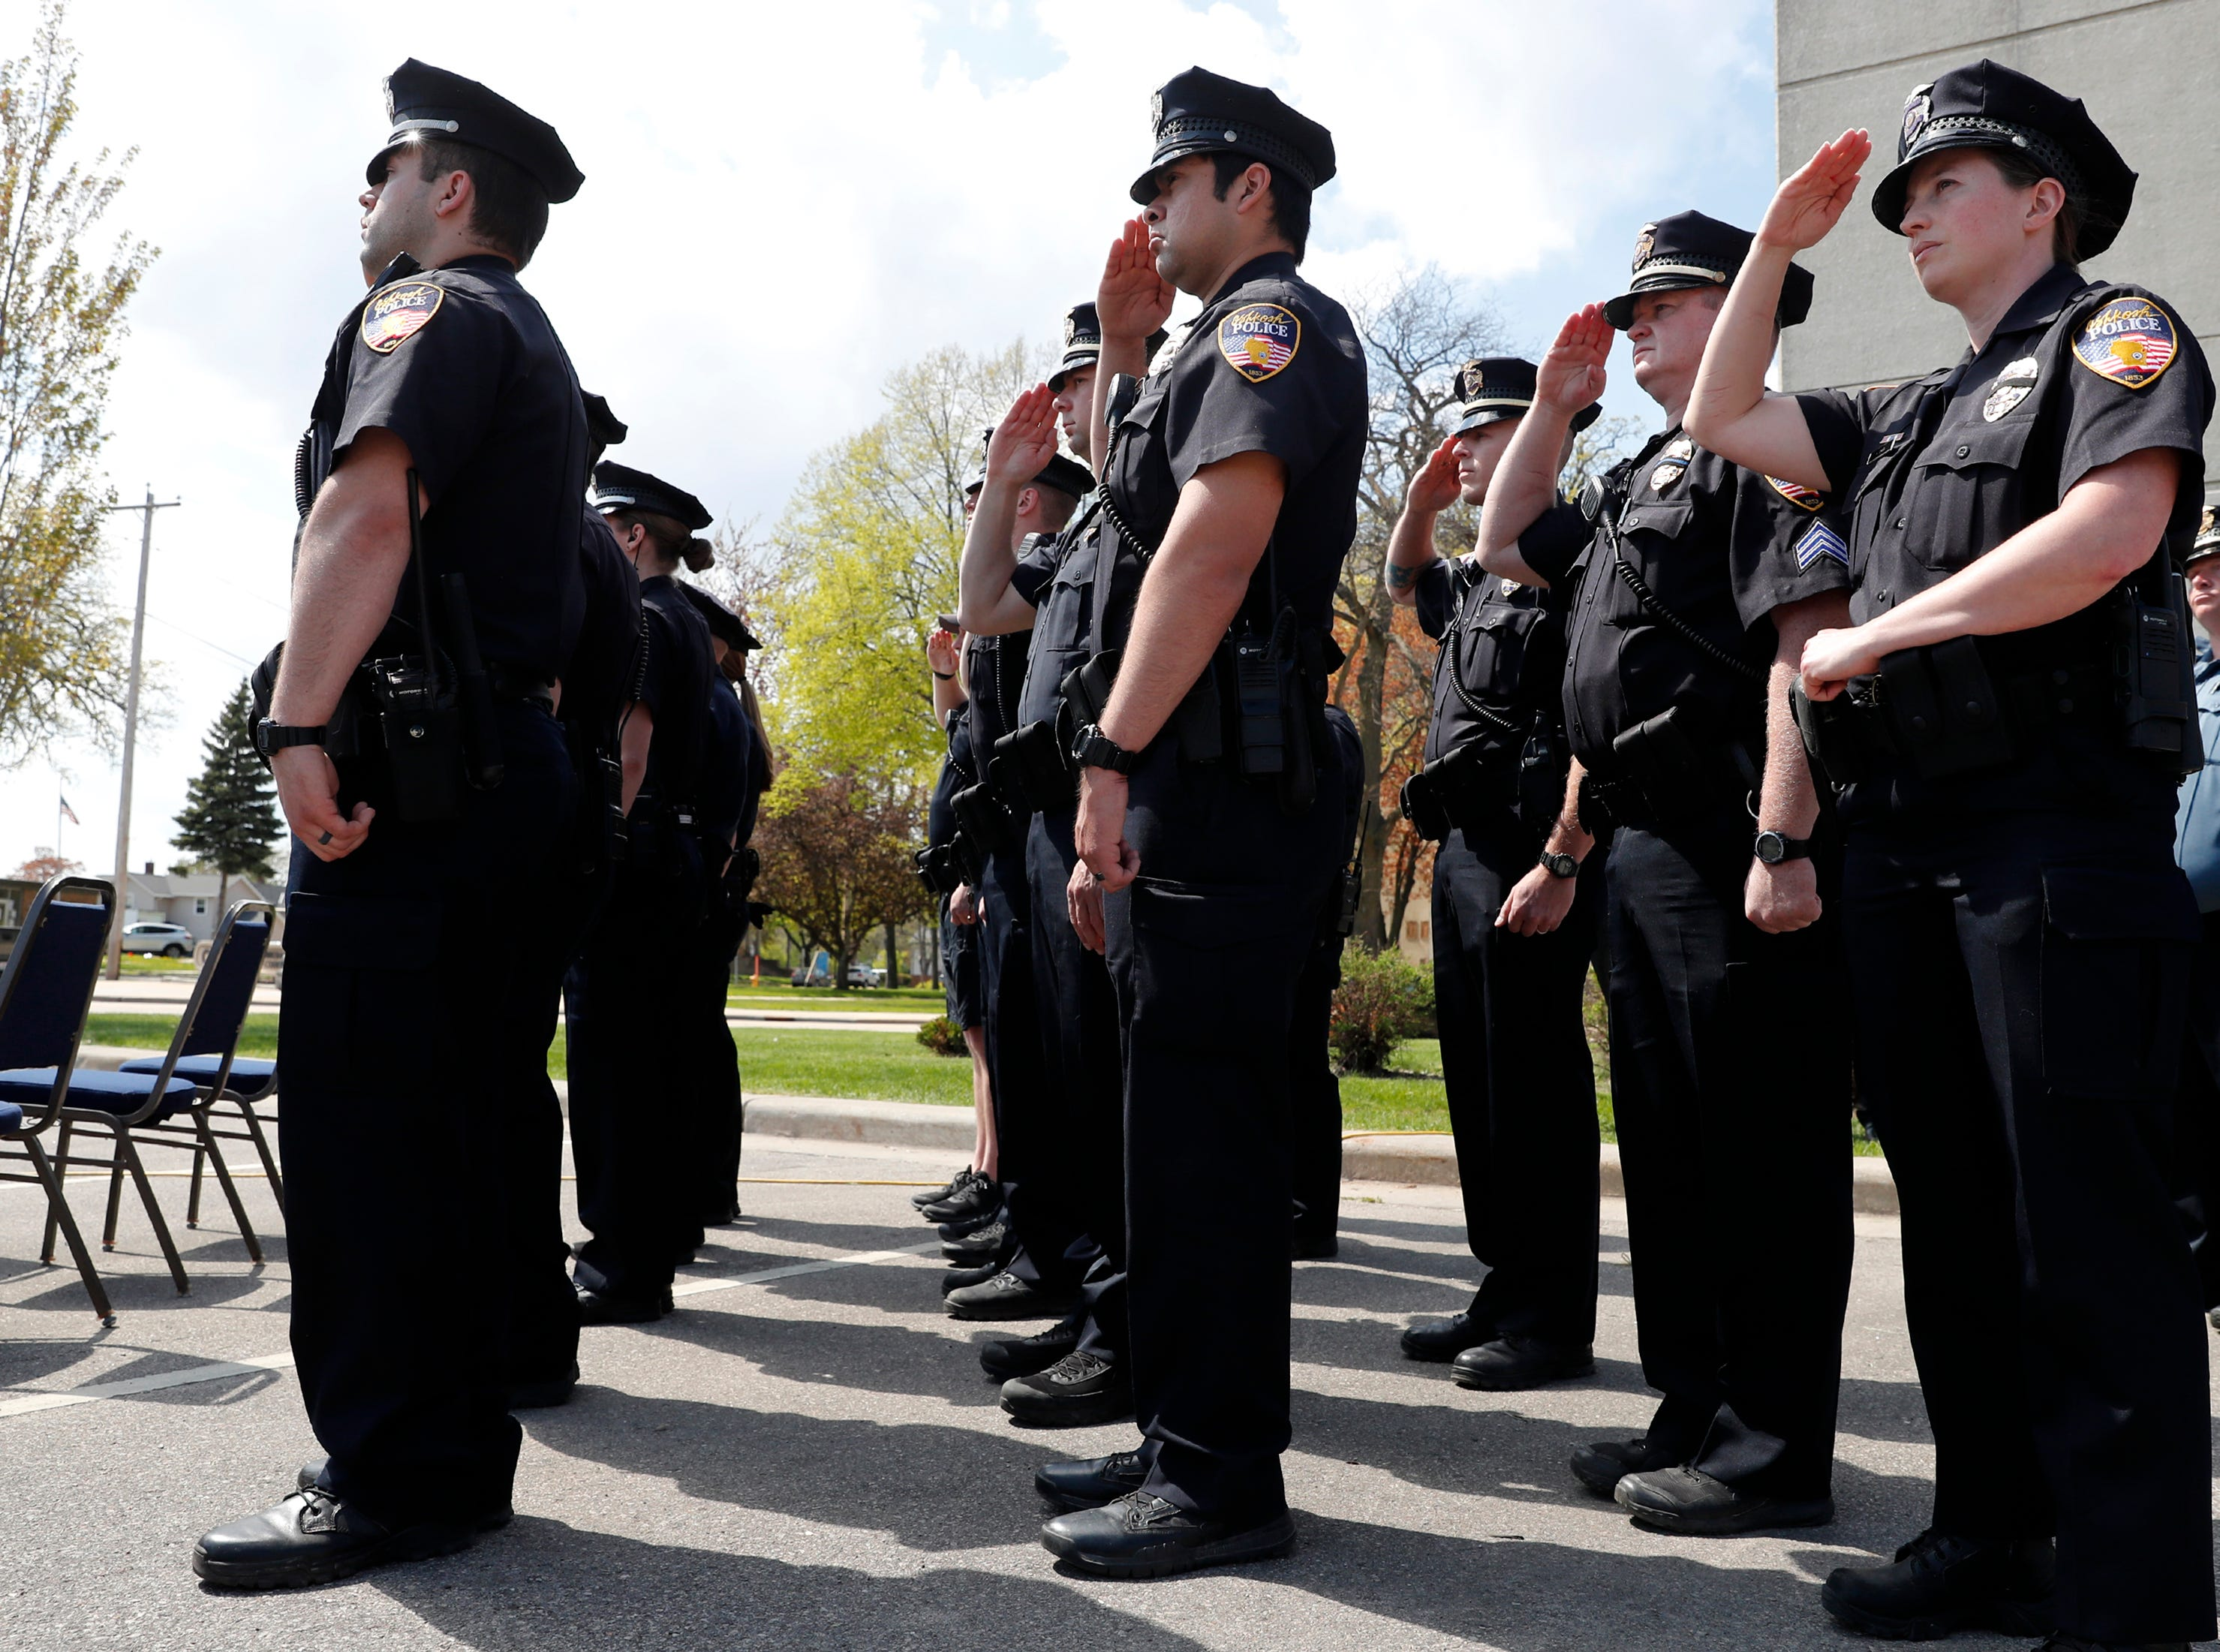 Oshkosh police officers salute during the playing of Taps at their Law Enforcement Memorial Ceremony Wednesday, May 15, 2019, at the Oshkosh Police Department in Oshkosh, Wis. Danny Damiani/USA TODAY NETWORK-Wisconsin